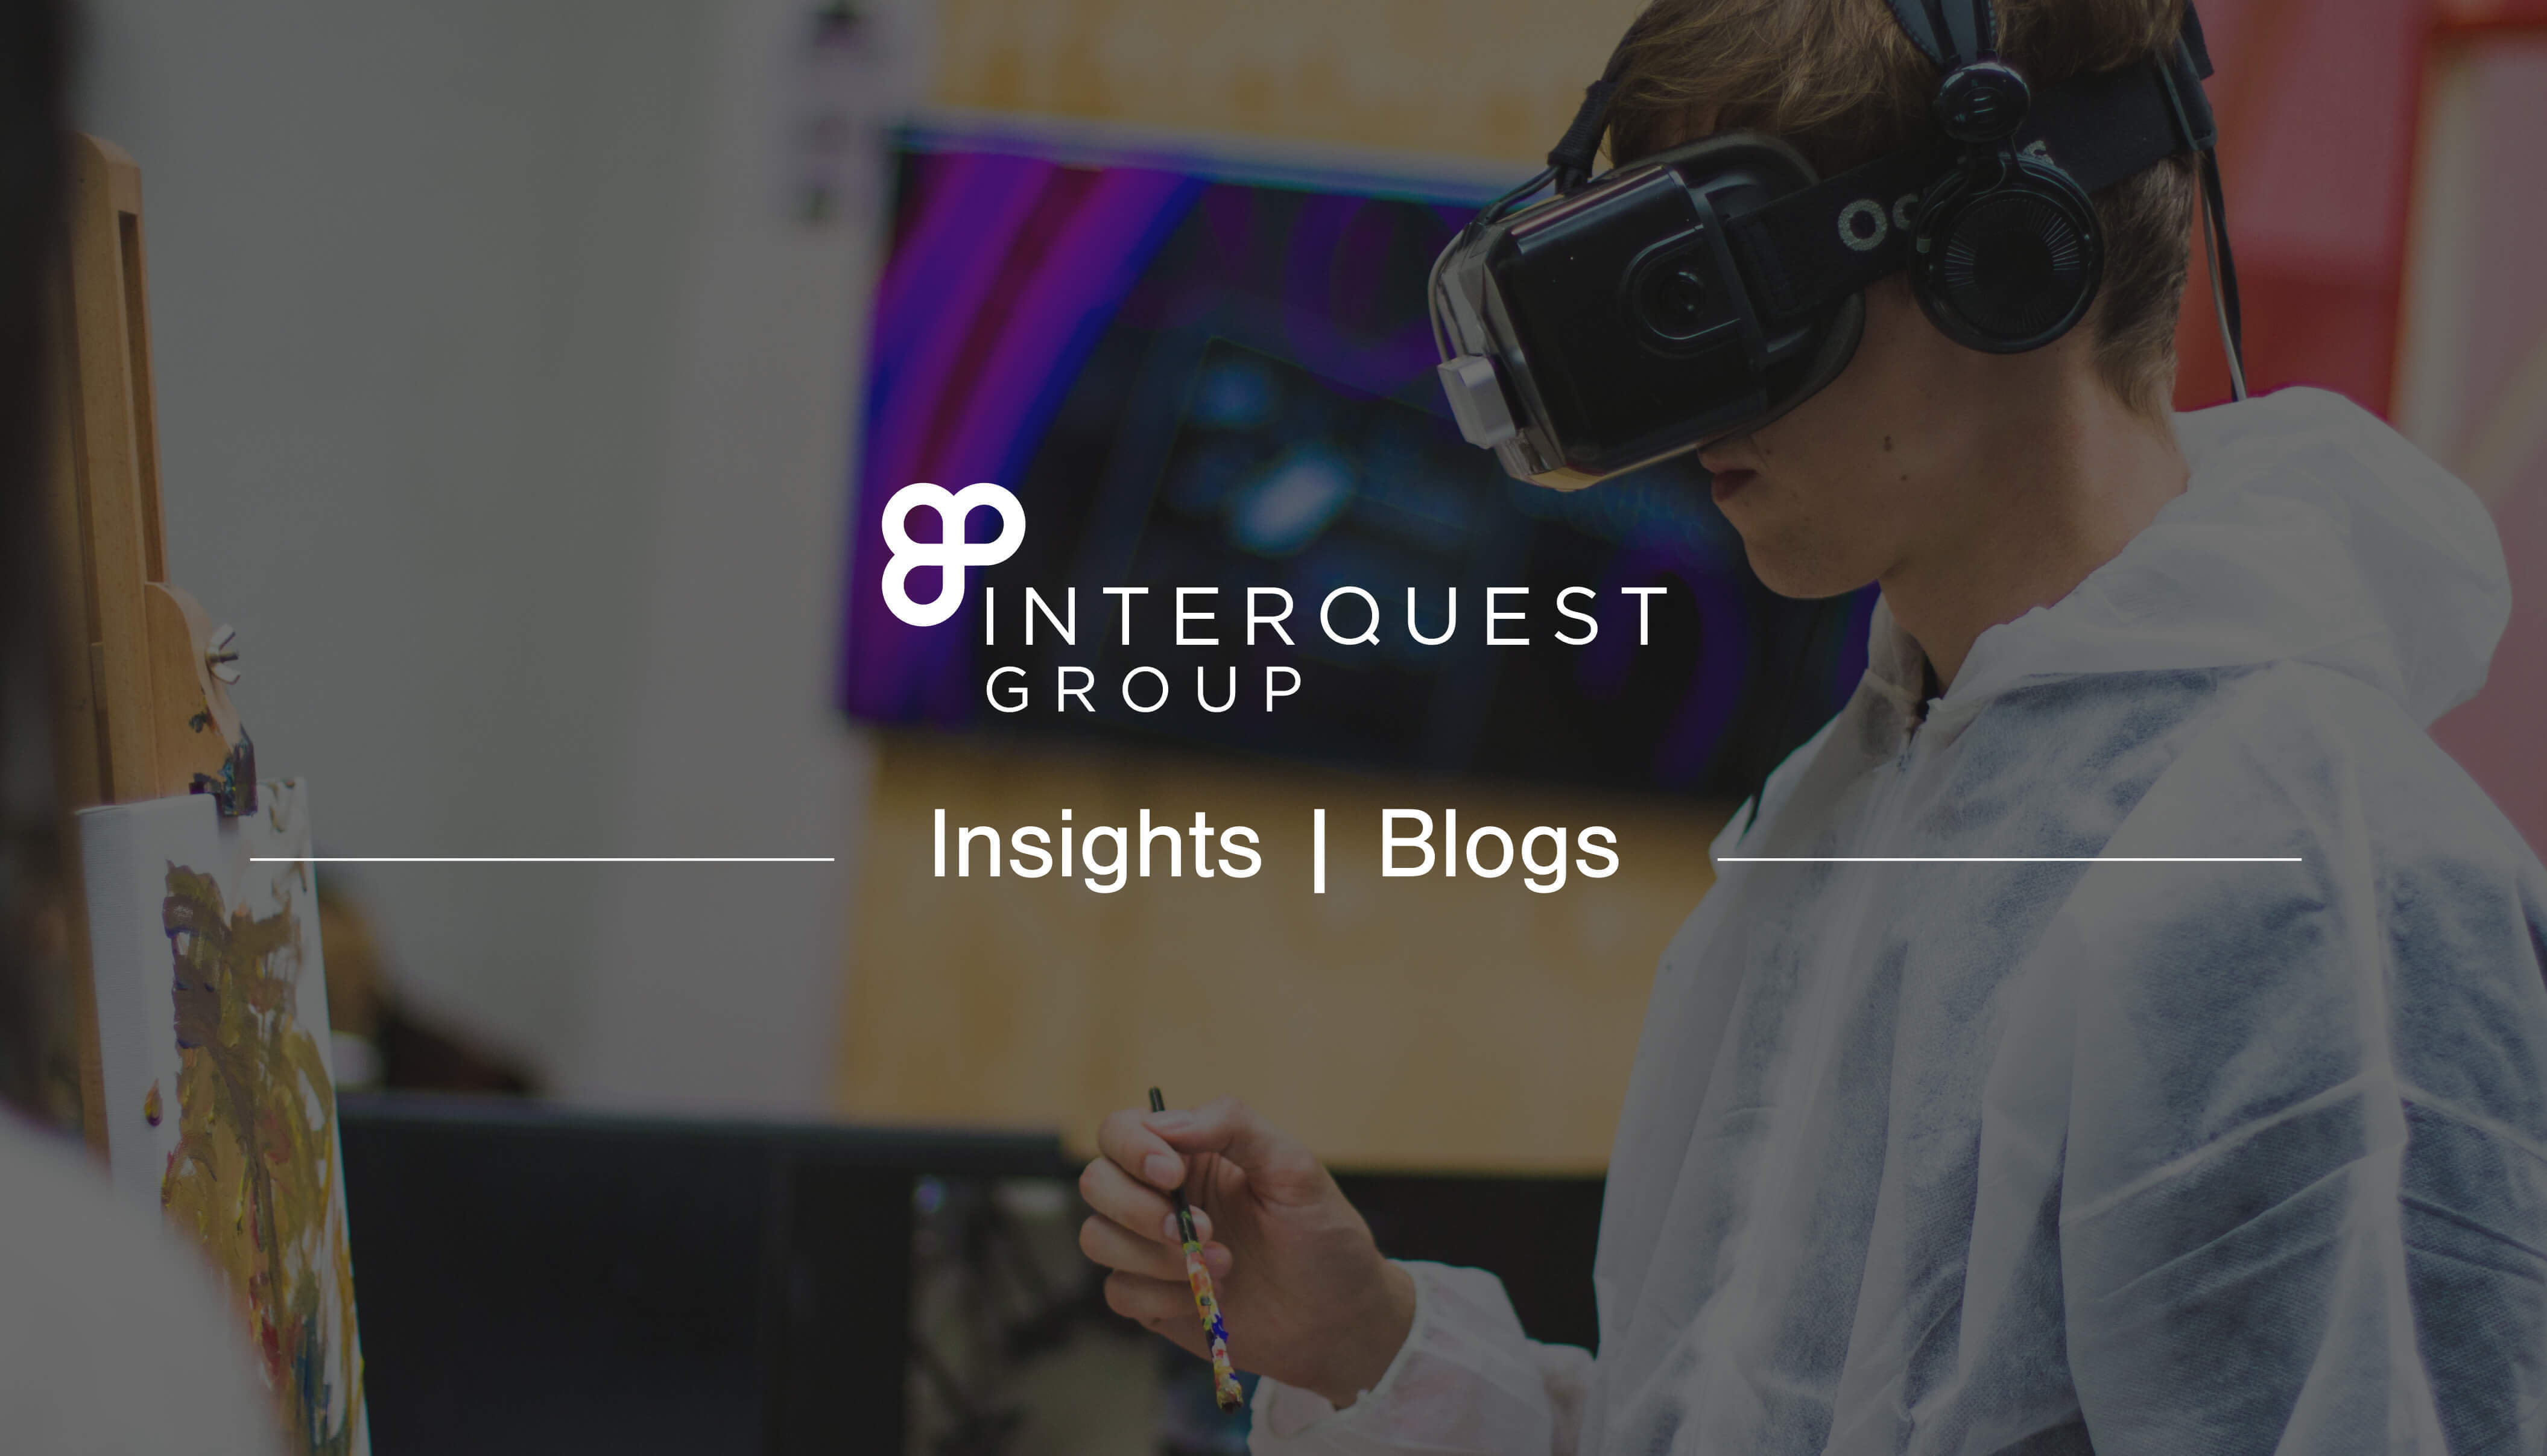 InterQuest Group insights banner with an image of a person using a virtual reality headset